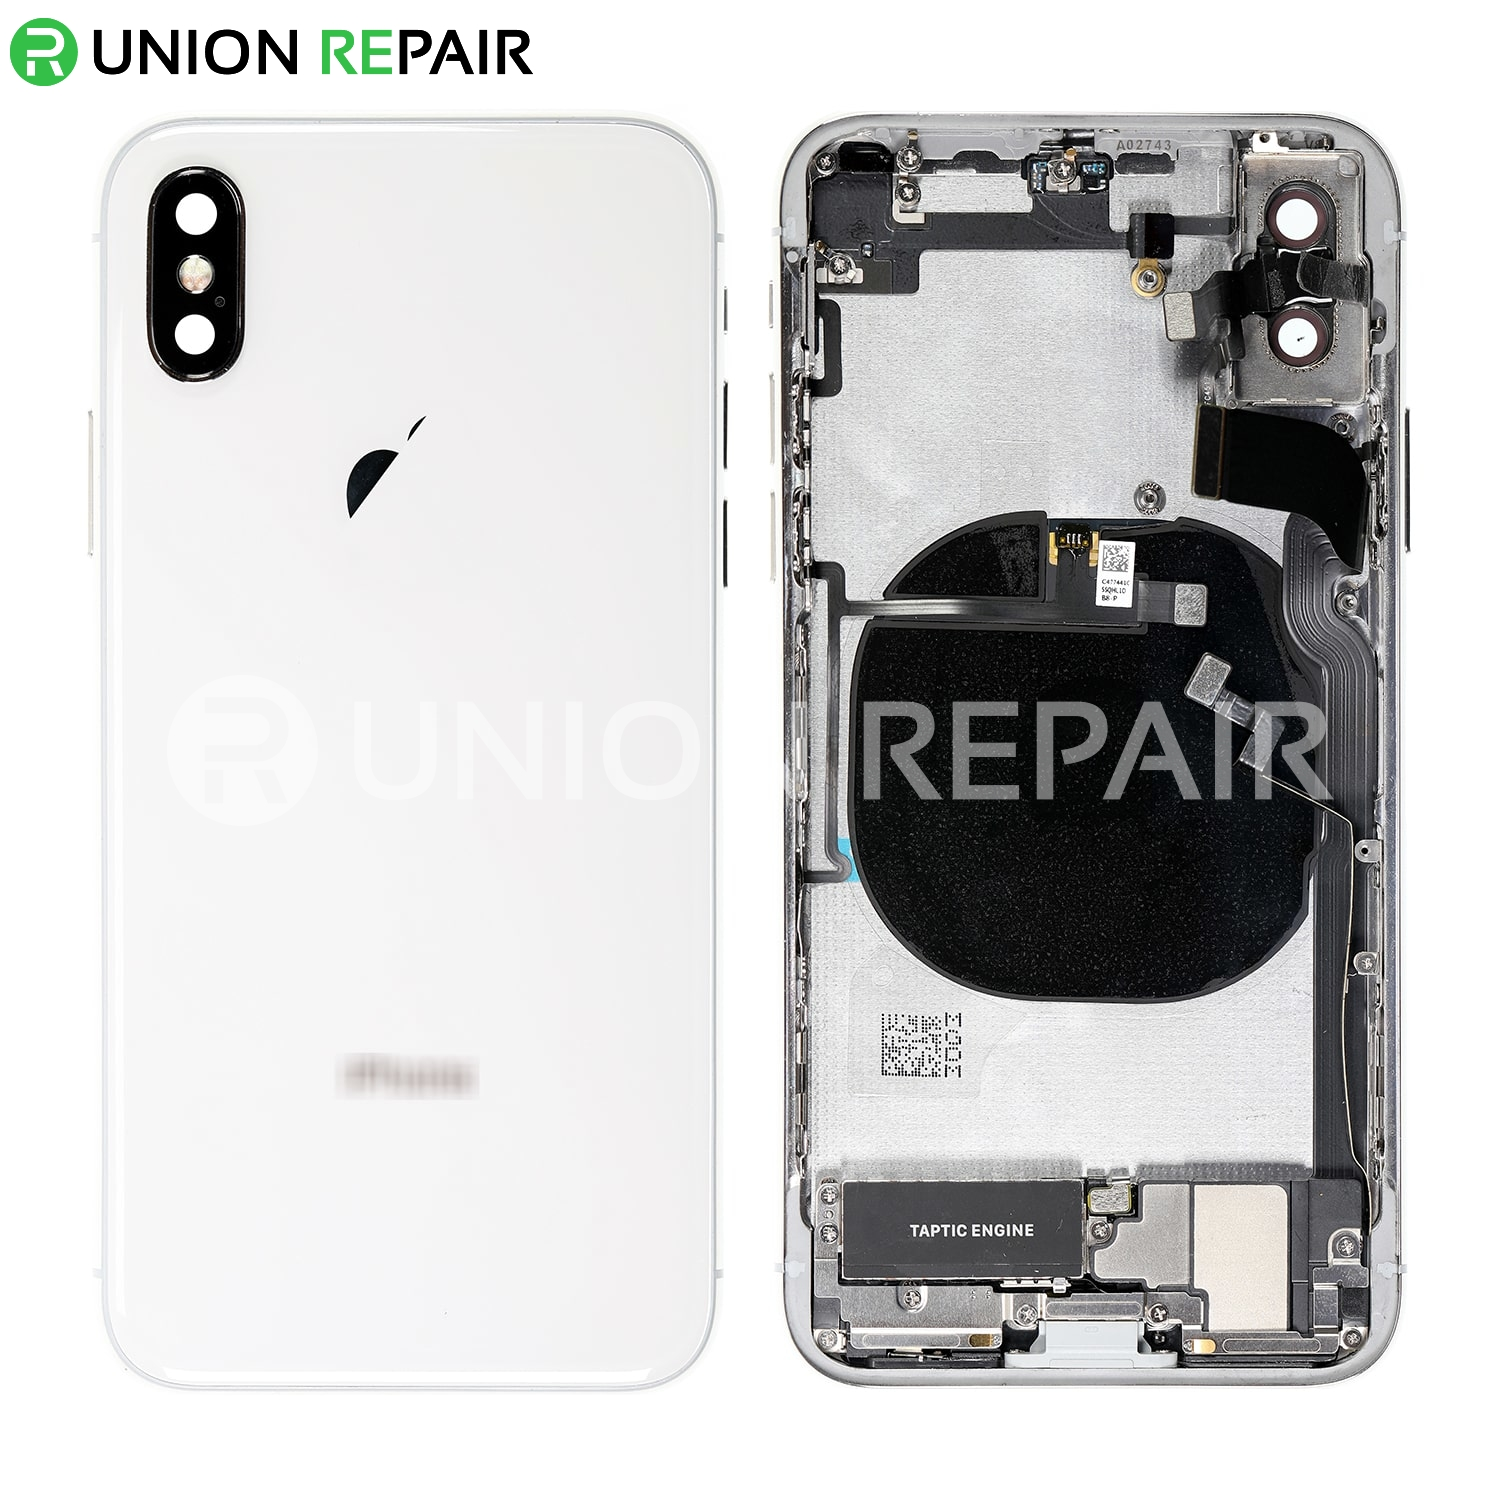 dd1a087cccef5 18433-replacement-for-iphone-x-back-cover-full-assembly-silver -1.jpg t 1540990602